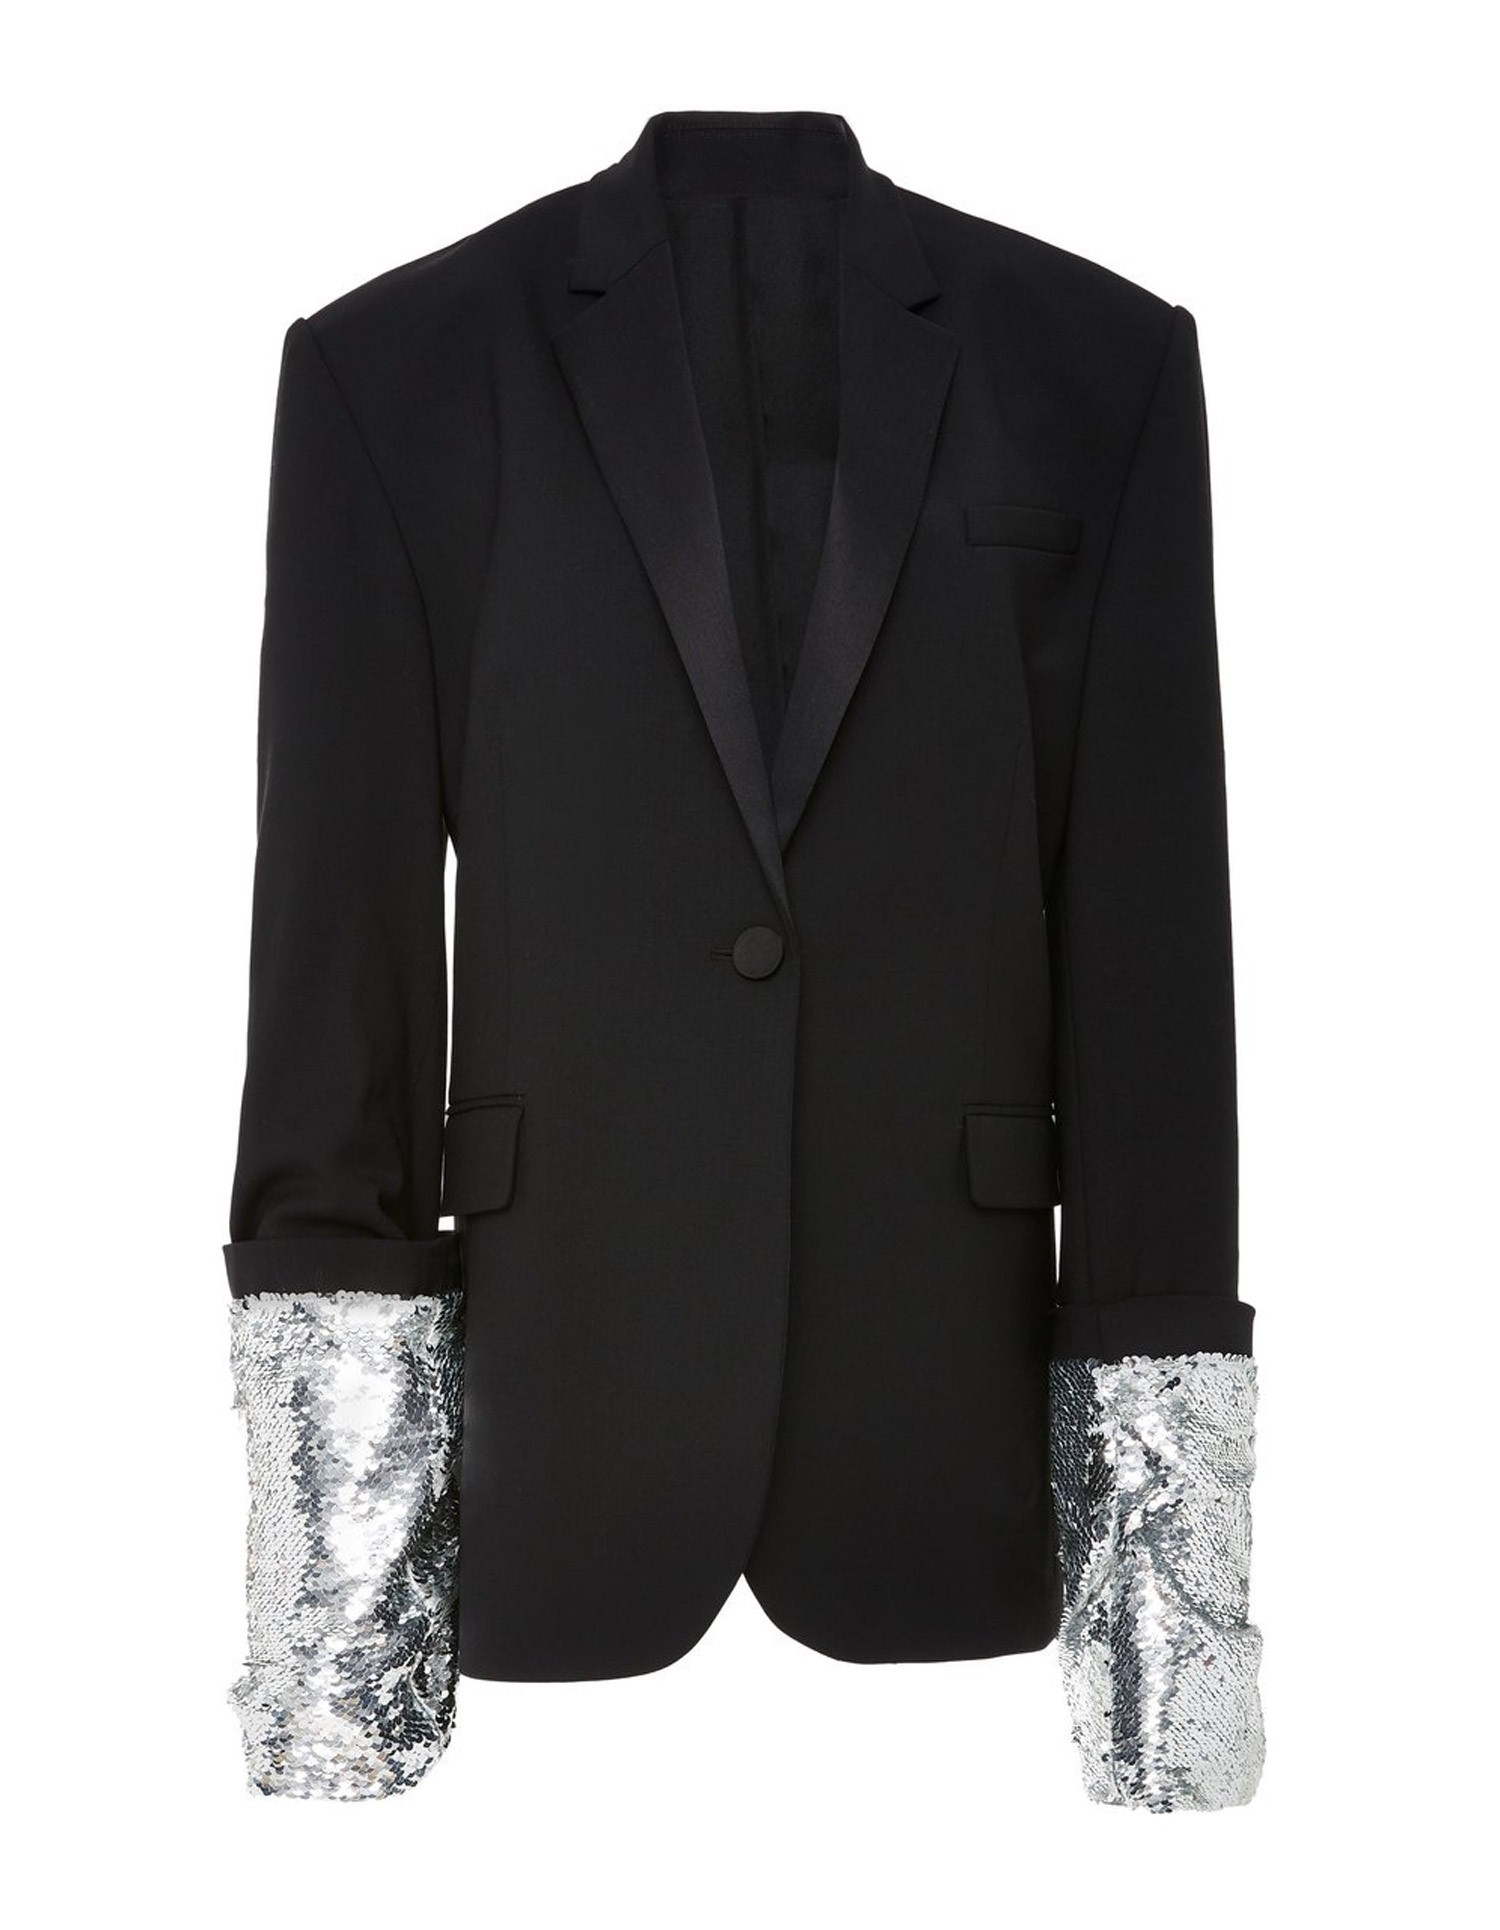 MONSE Large Sequin Cuff Jacket on Model Lookbook View